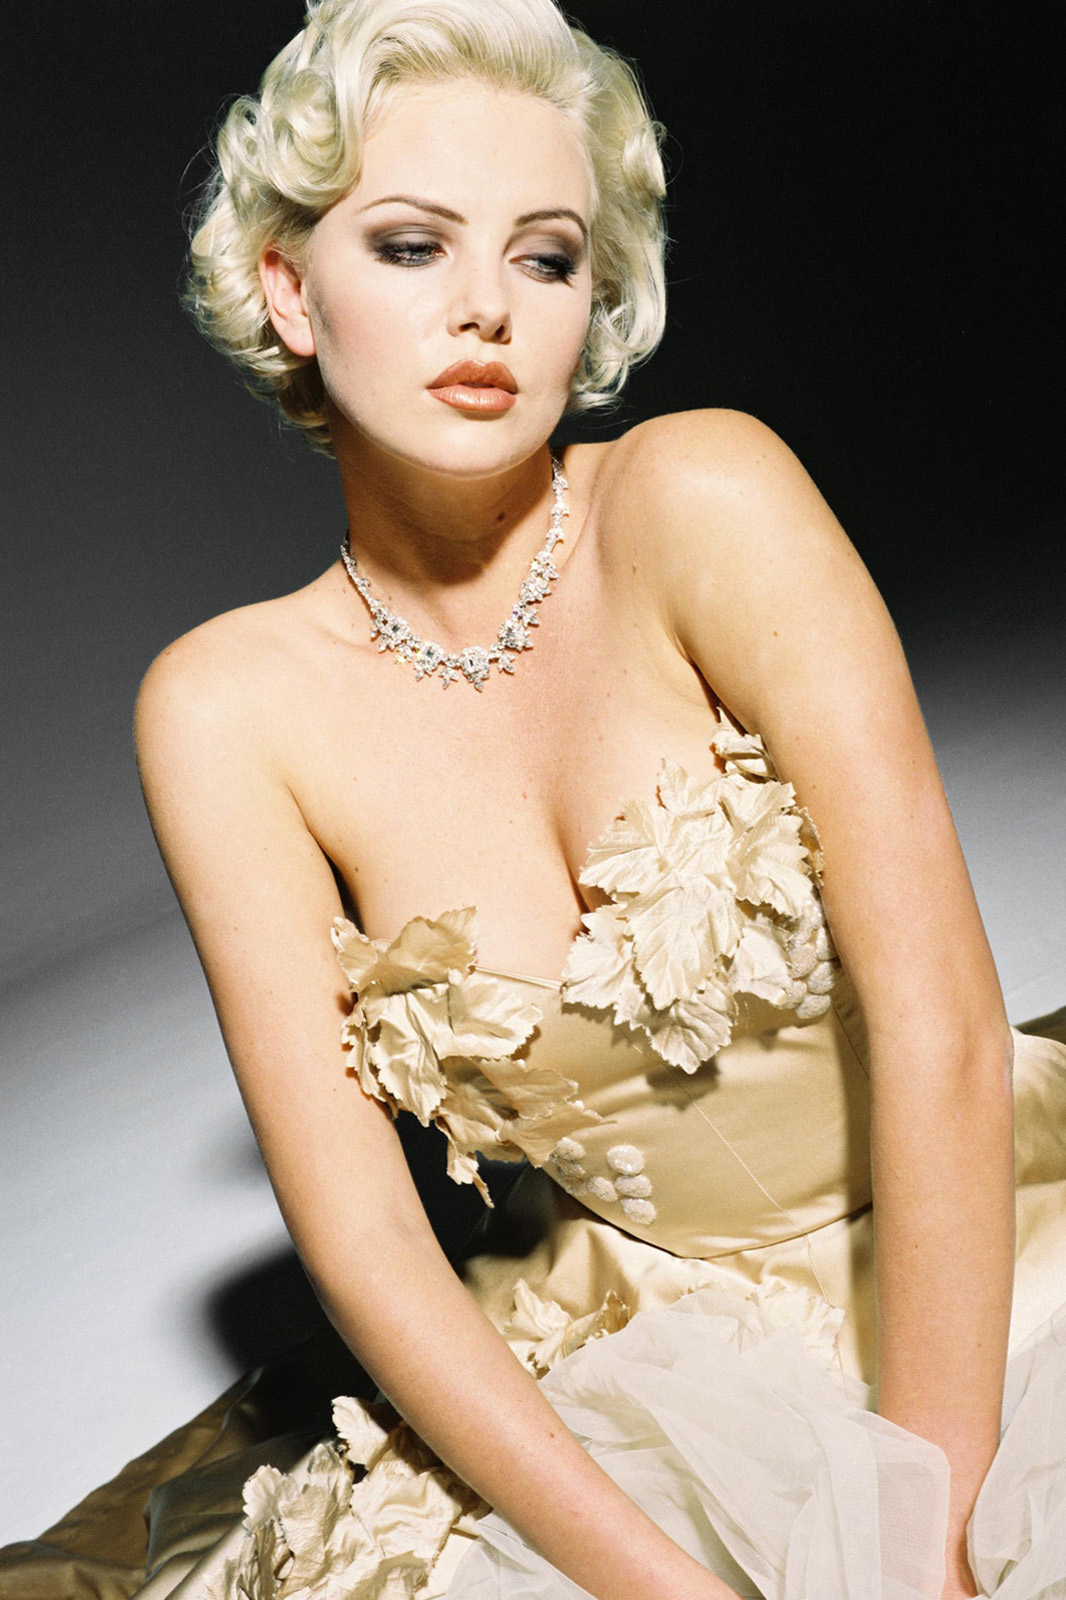 Charlize Theron Hot Pictures | Charlize Theron Wallpapers Charlize Theron